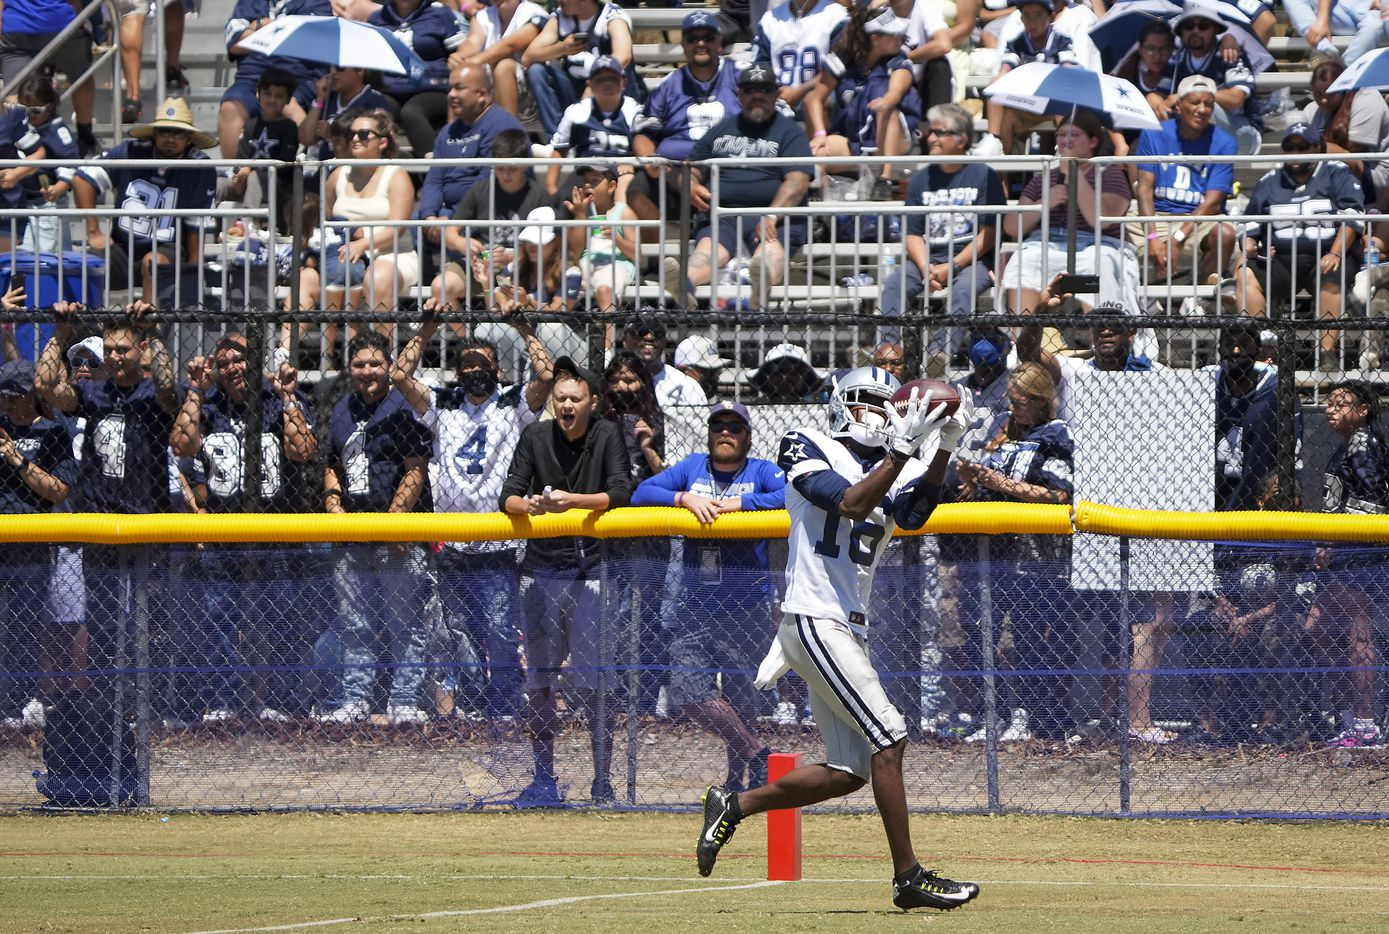 Dallas Cowboys fans watch wide receiver Reggie Davis haul in a pass during a practice at training camp on Sunday, Aug. 1, 2021, in Oxnard, Calif.